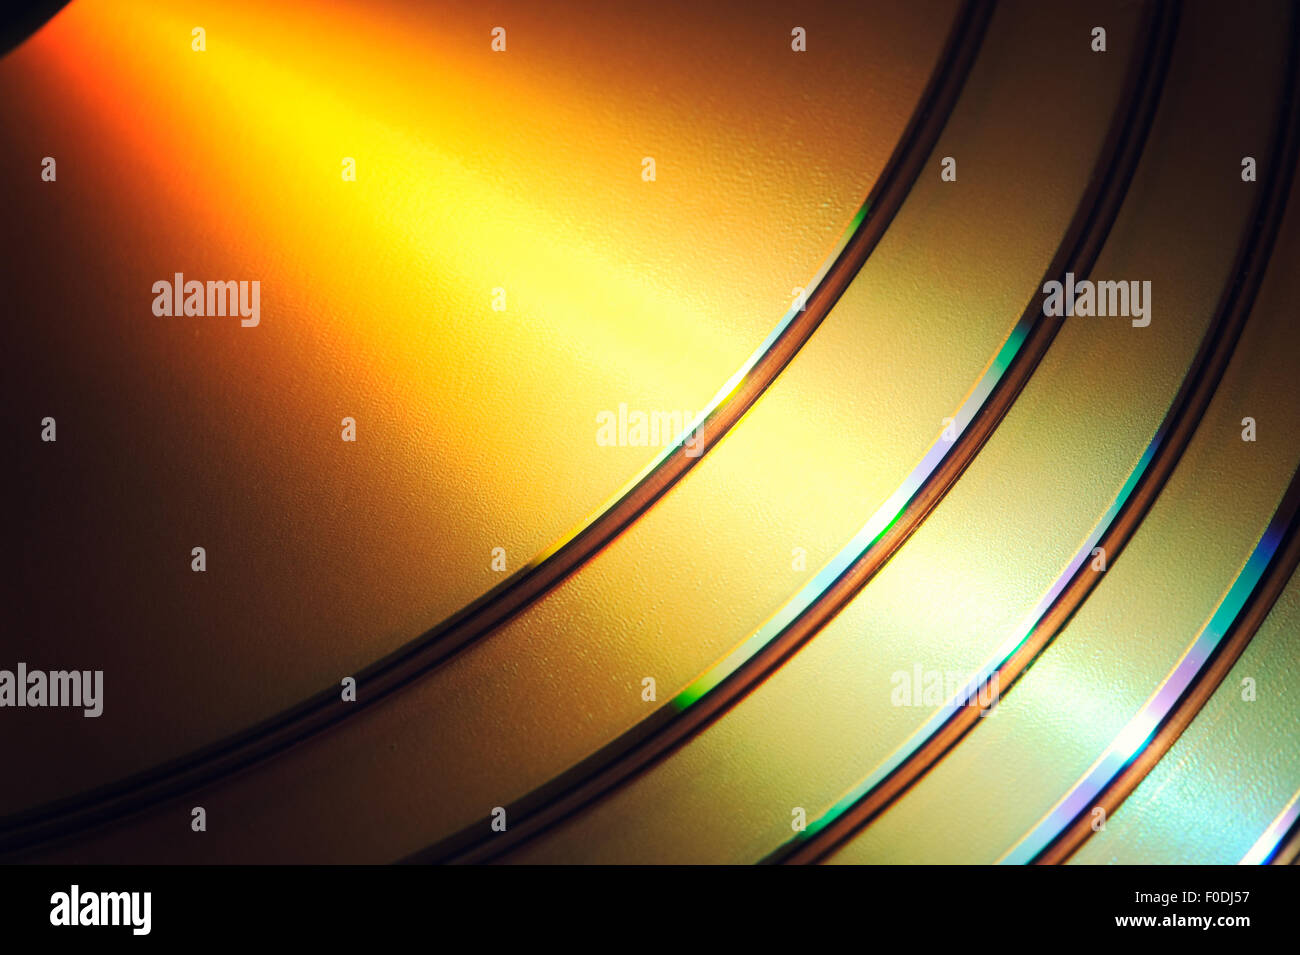 DVD Blue Ray CD Background - Stock Image